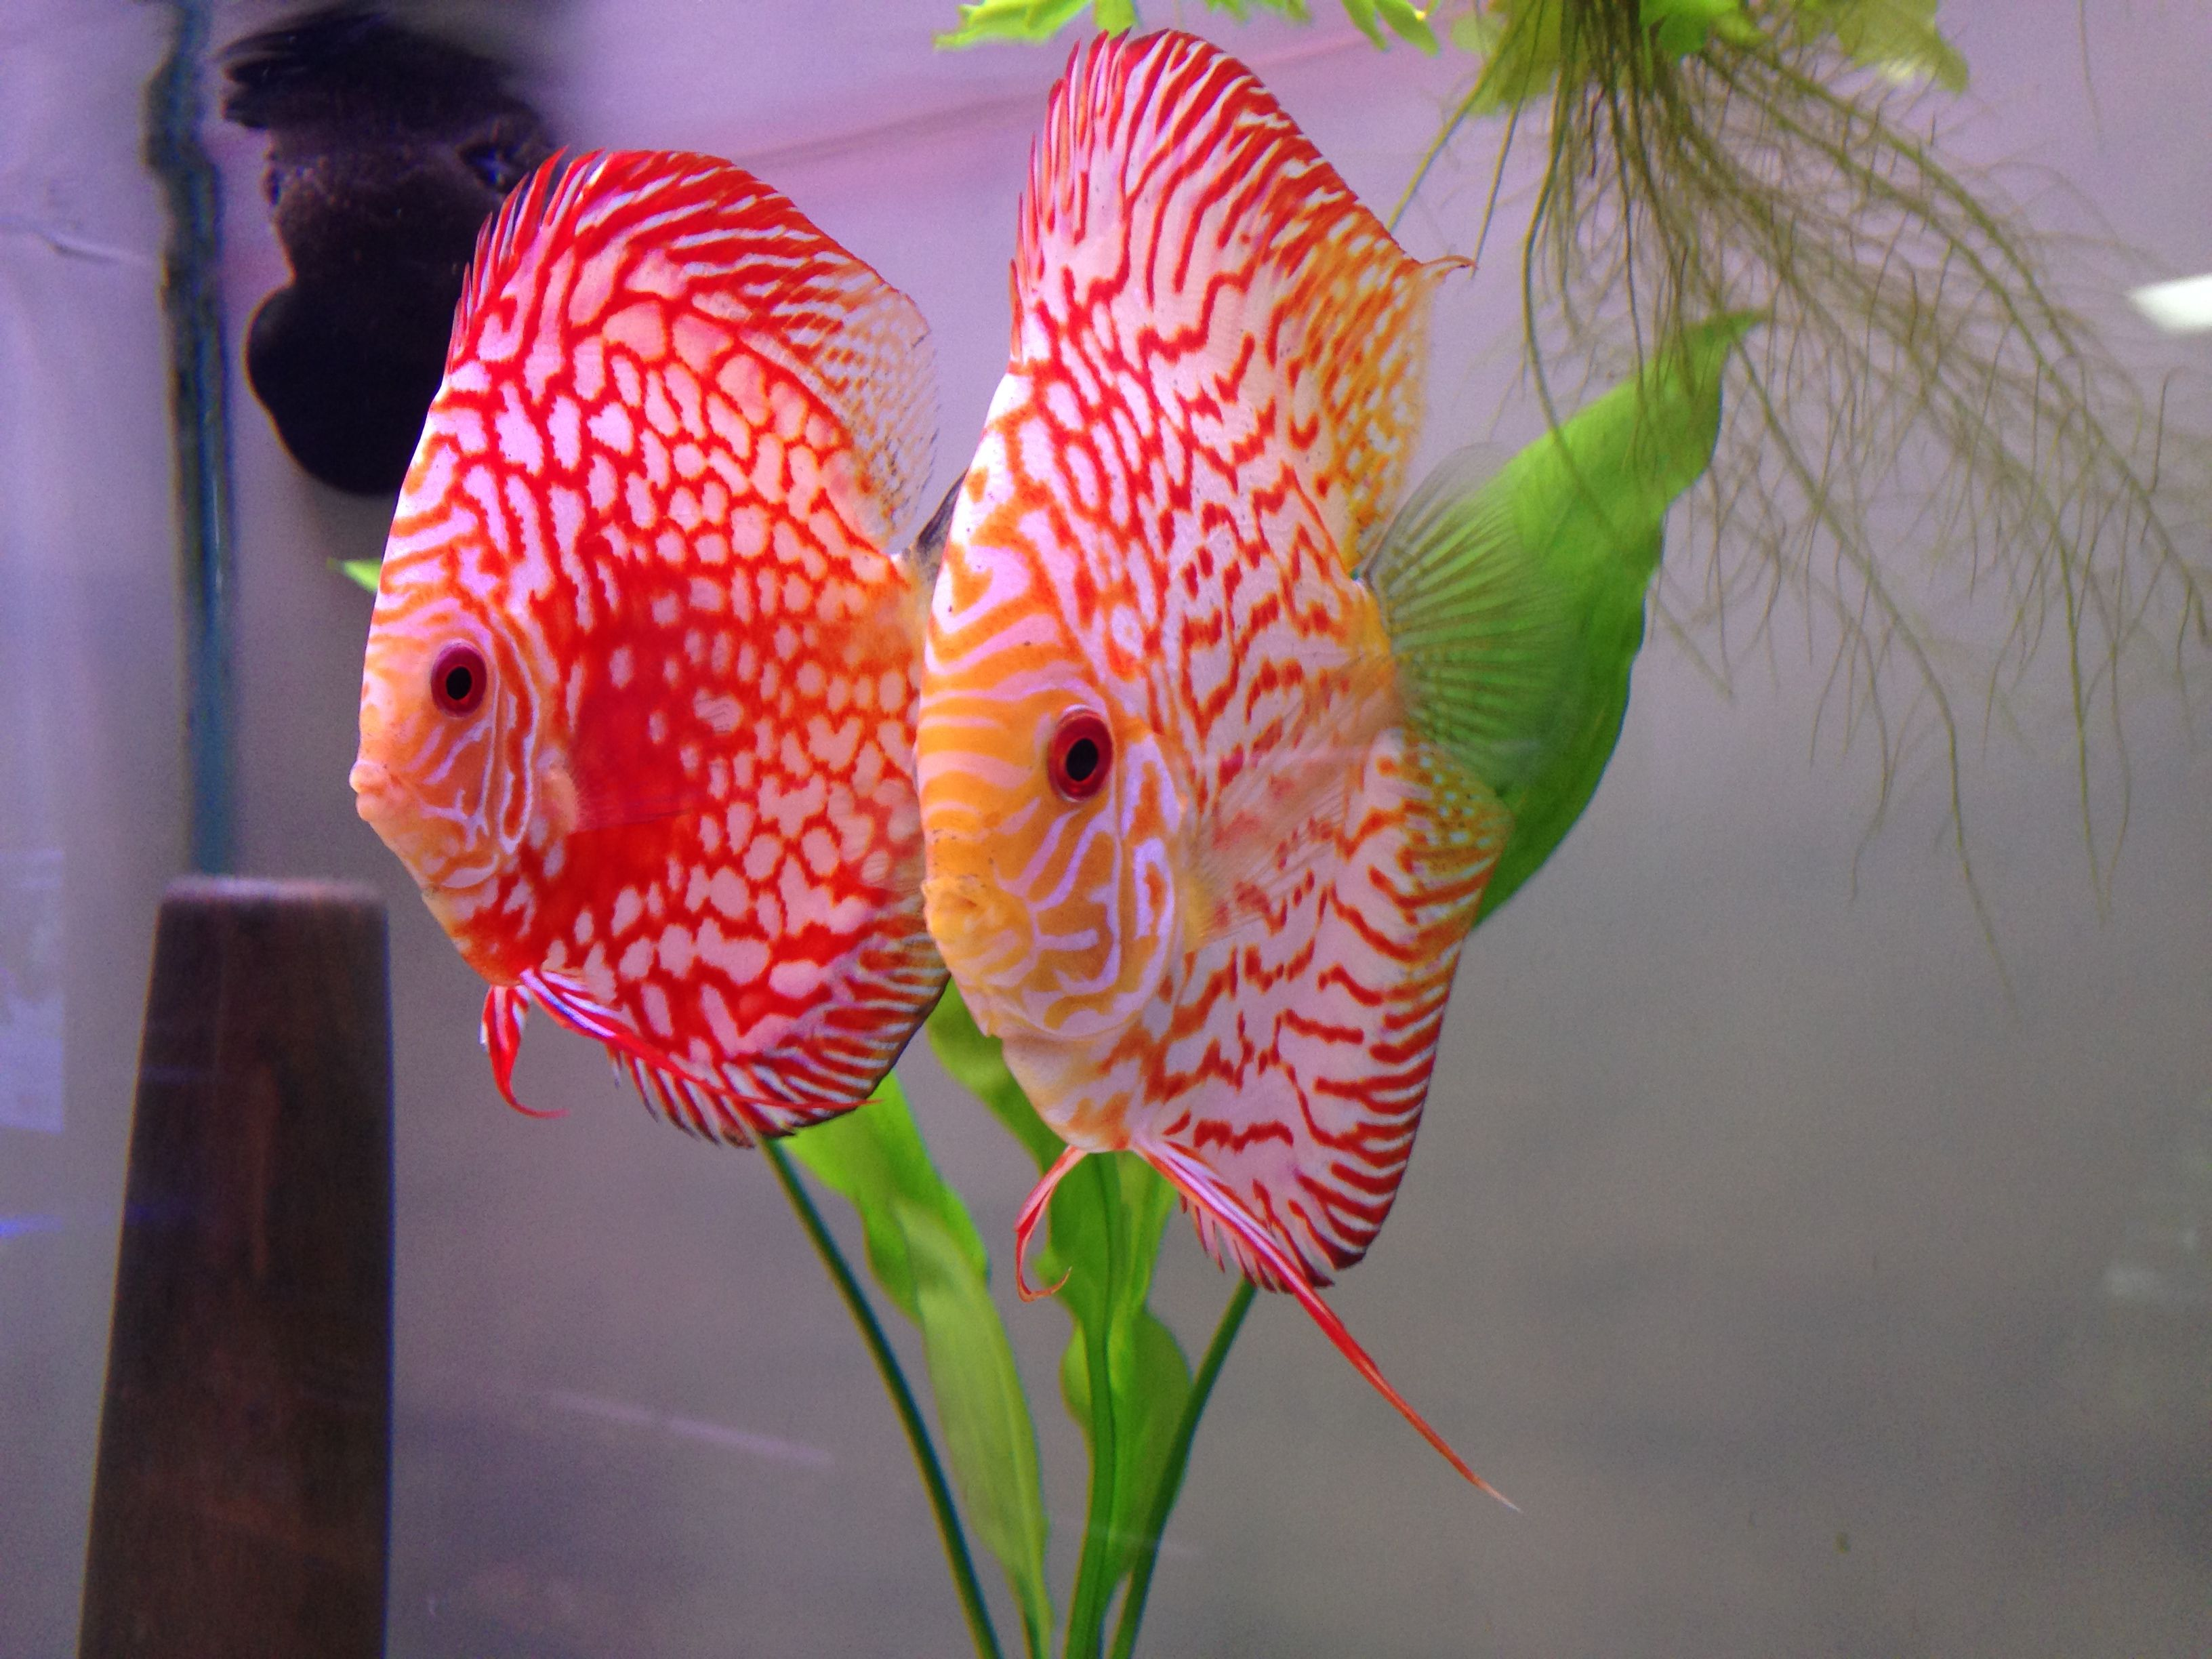 Rare Discus Fish Discus Fish Are Belong To A Family Of